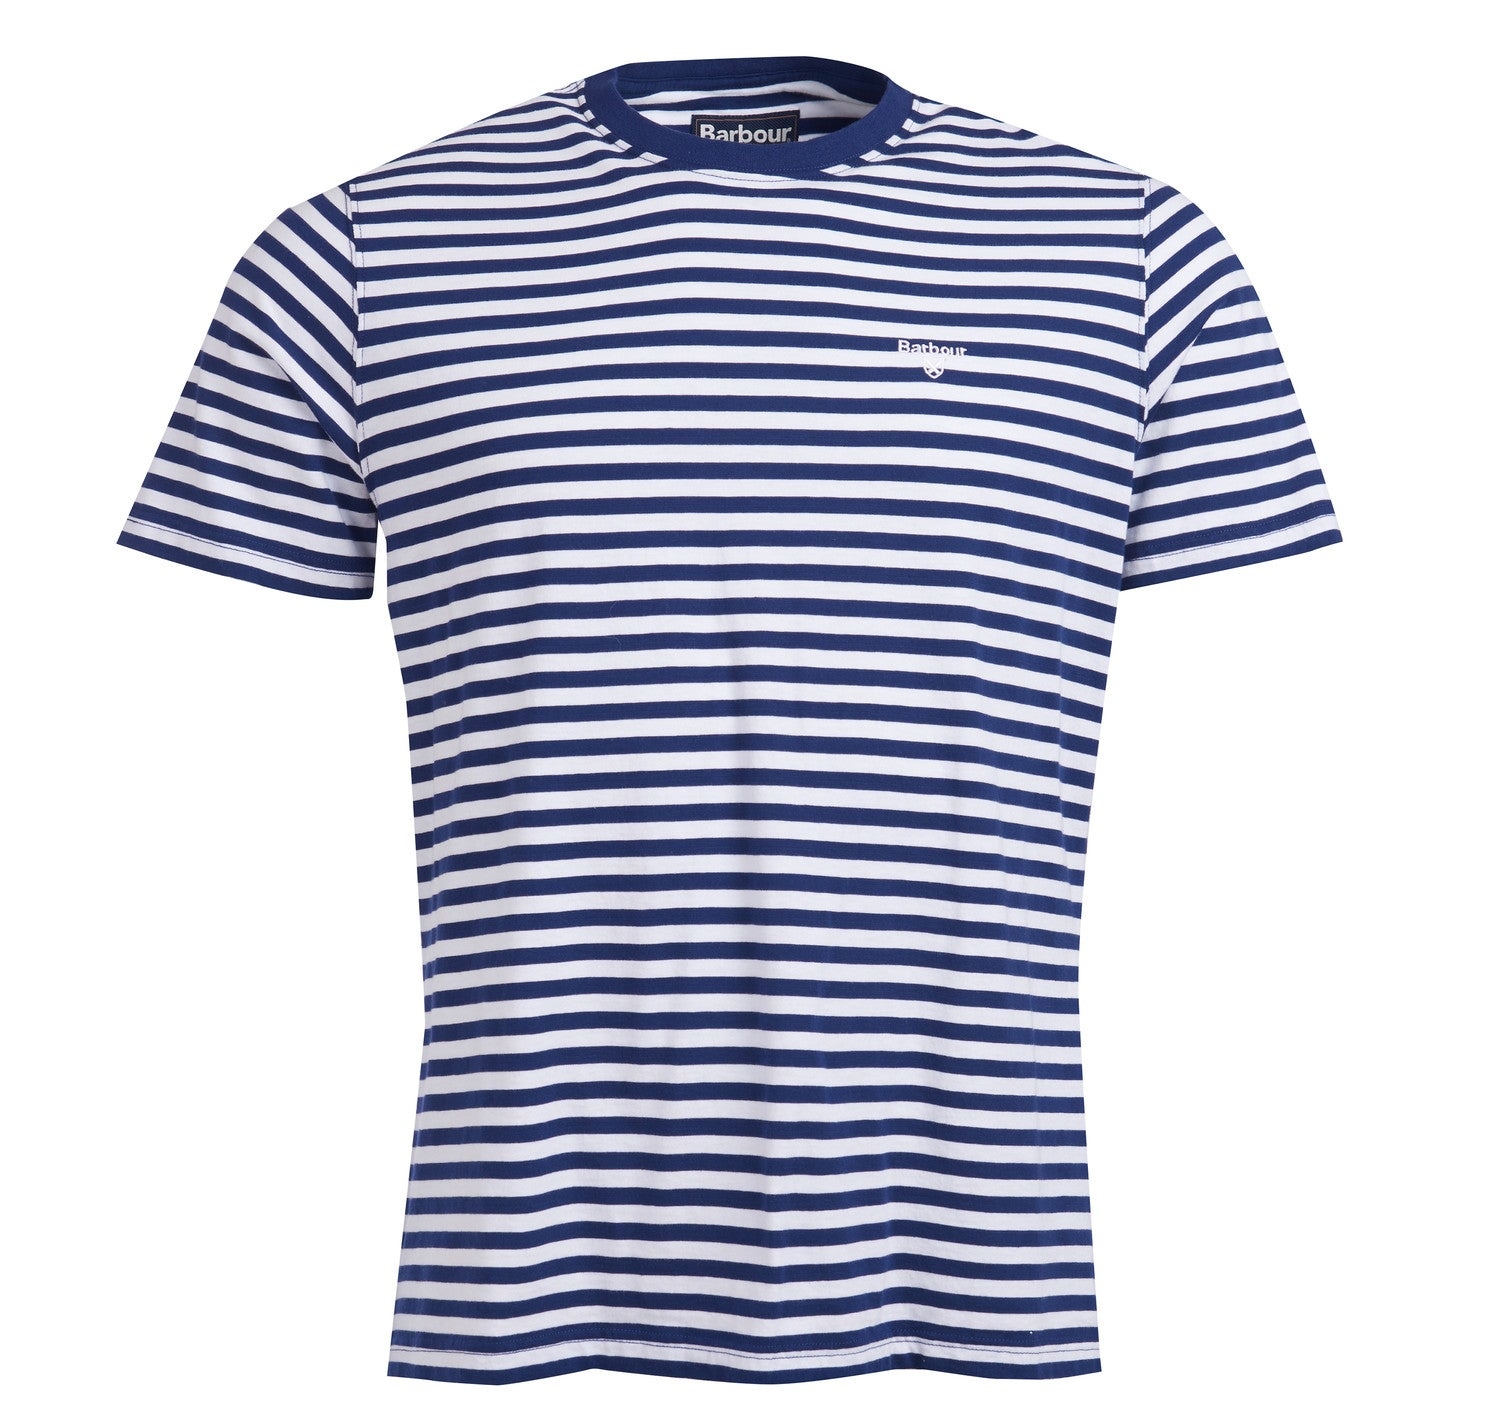 Barbour Delamere Stripe Tee for Men in Inky Blue